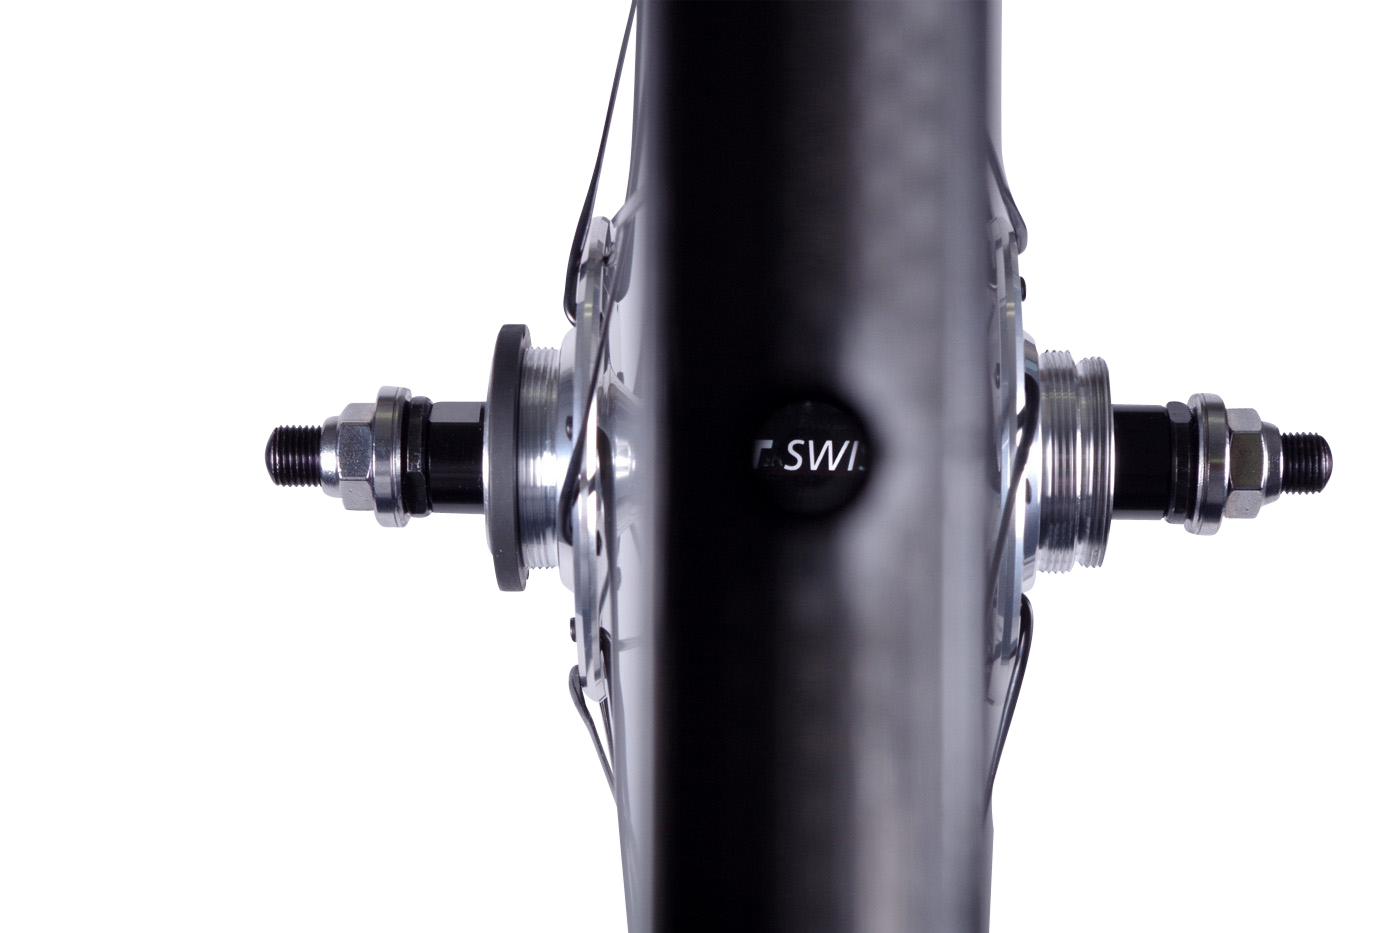 DT Swiss 06 - DT Swiss wheels - Now available at 8bar bikes